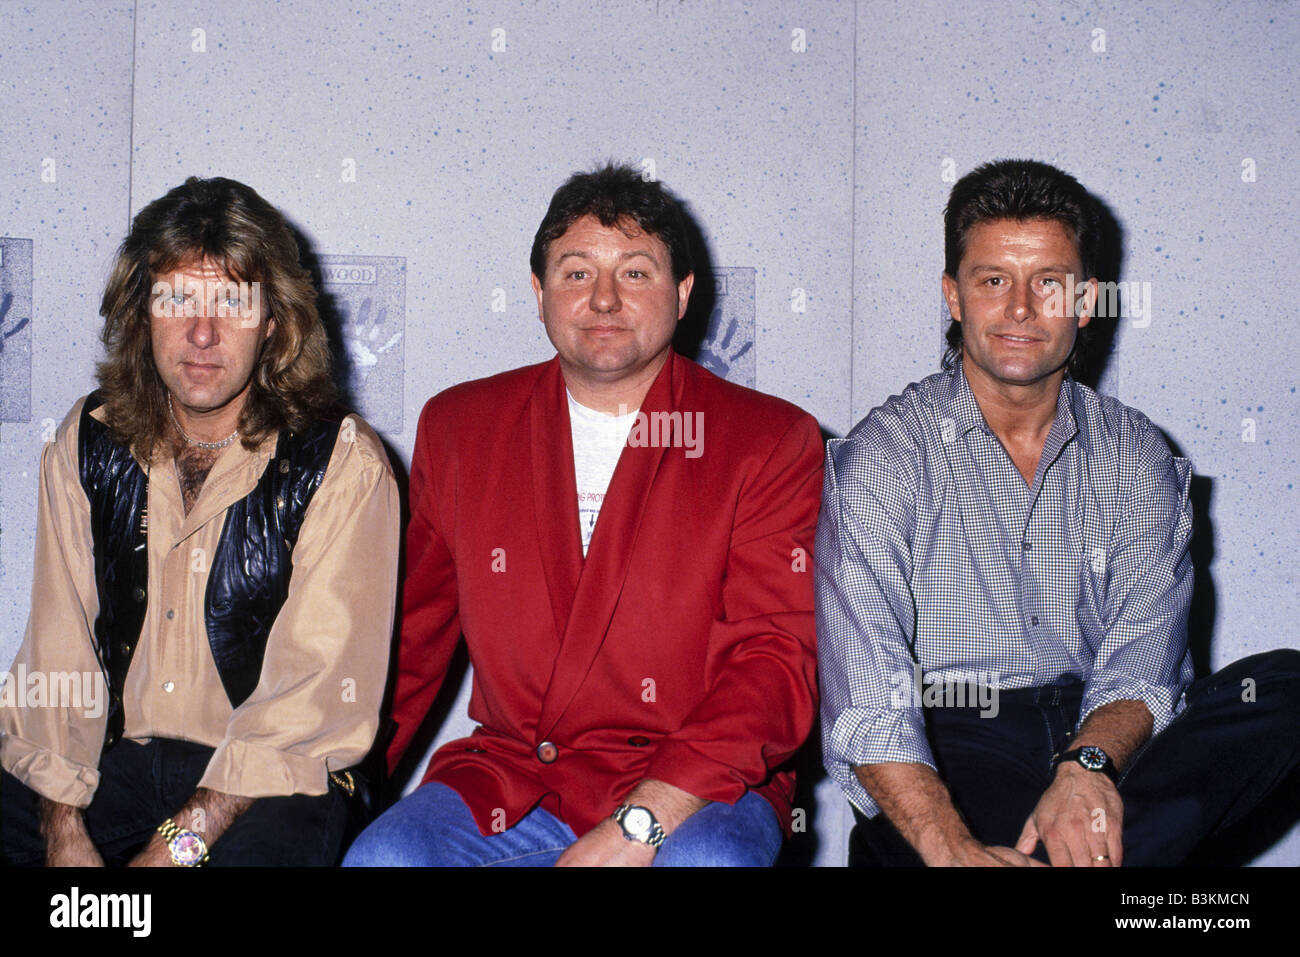 EMERSON LAKE AND PALMER  UK rock group with from left Keith Emerson, Greg Lake and Carl Palmer about 1980 - Stock Image